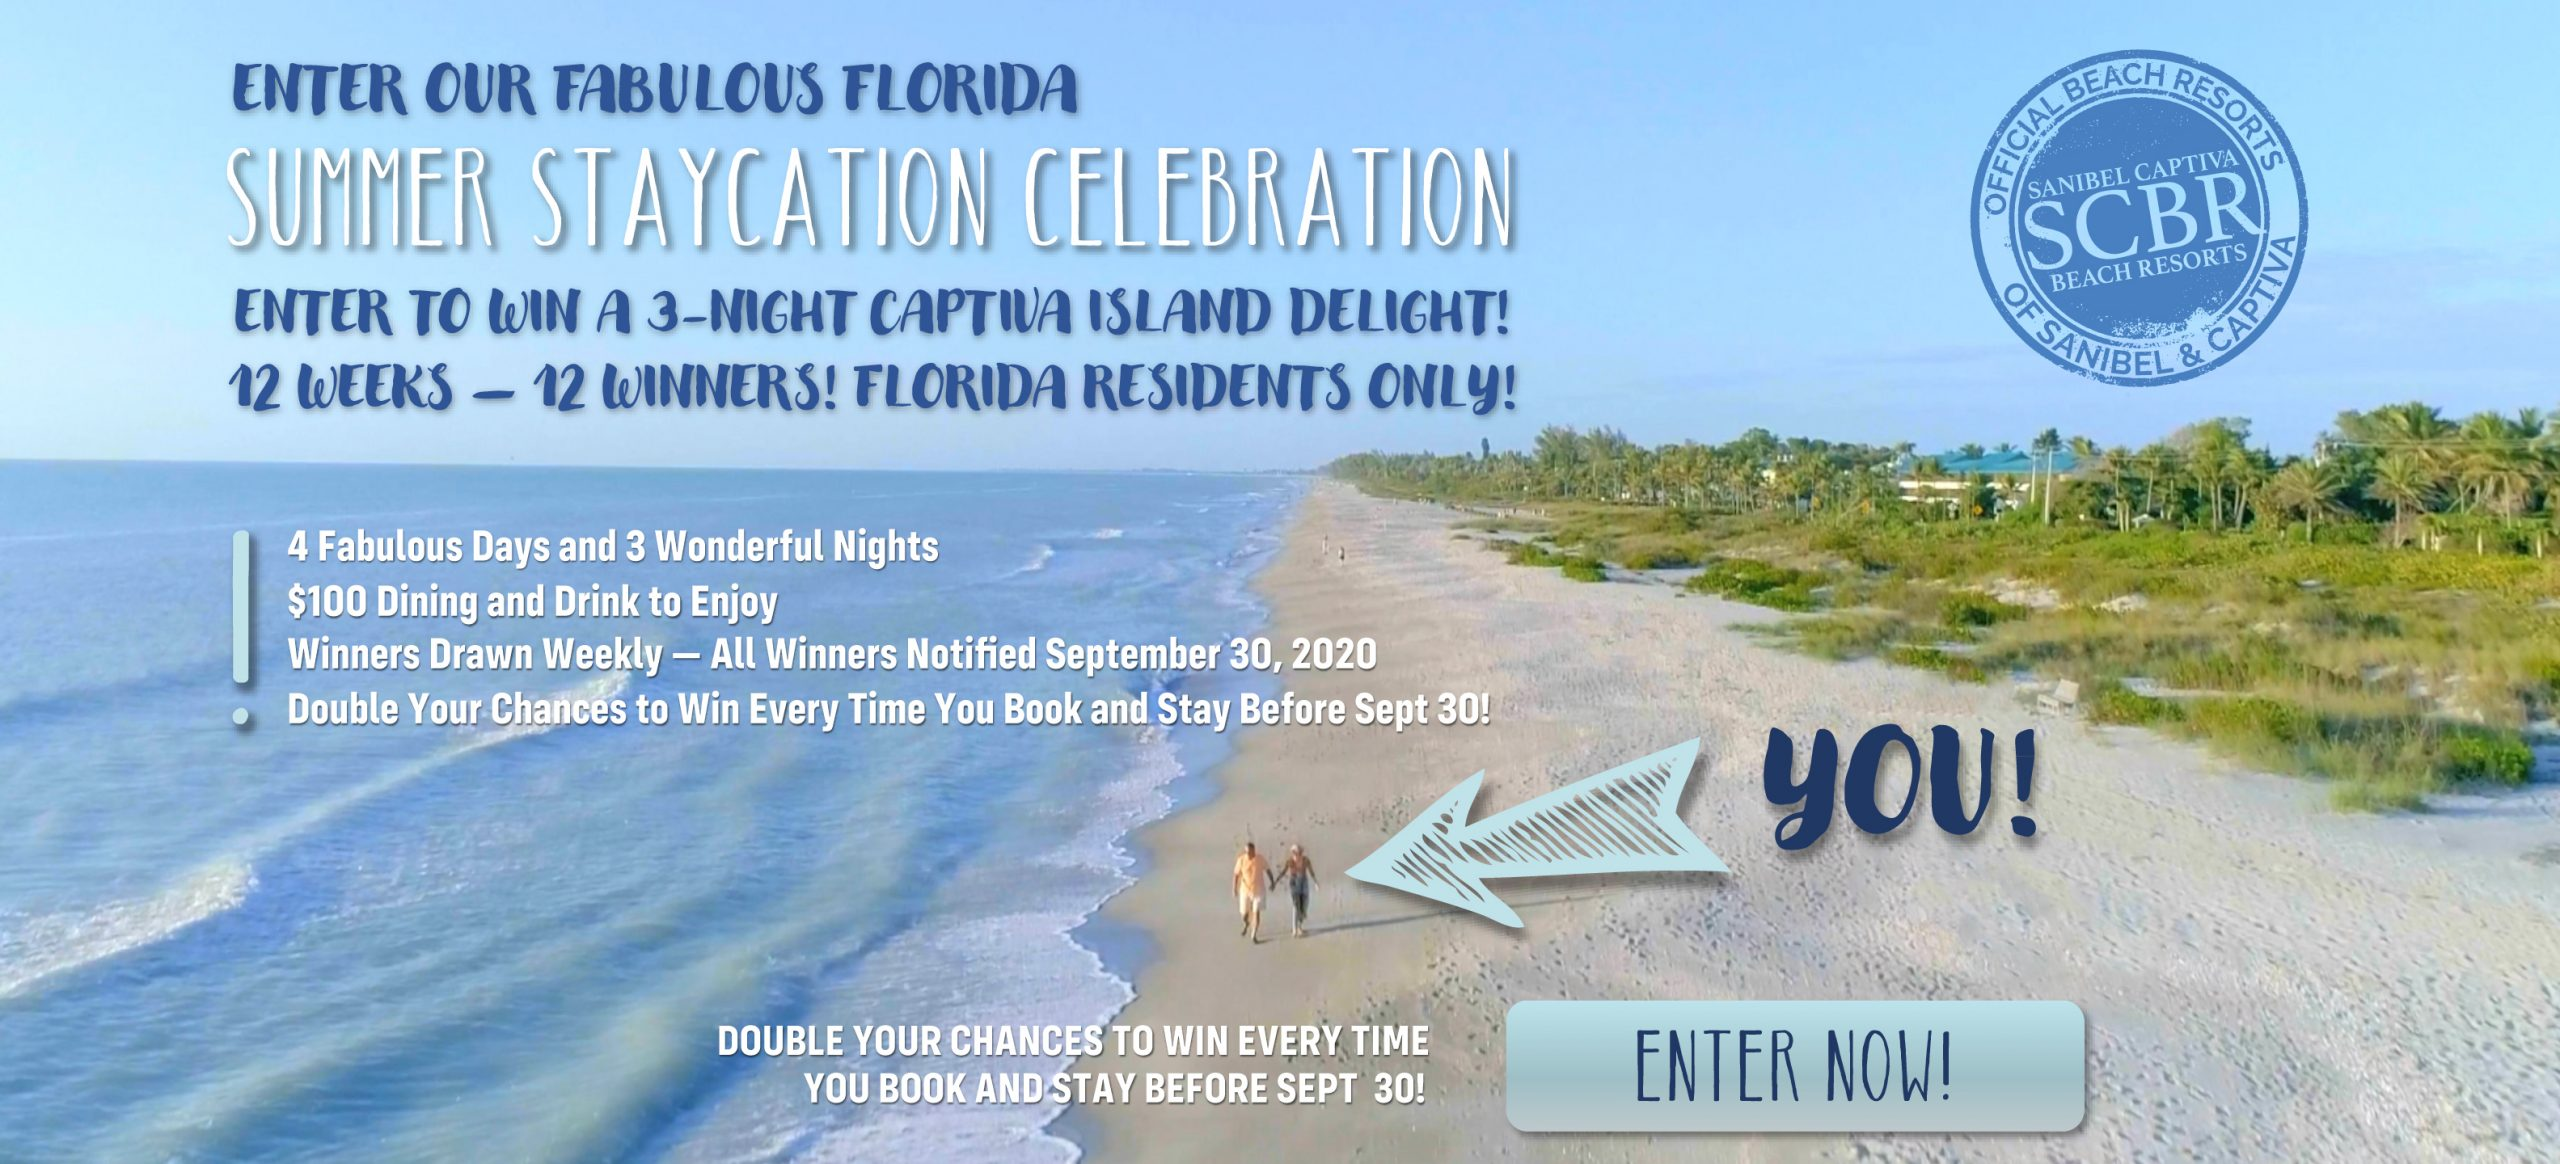 Summer Staycation Contest at 'Tween Waters Captiva Island, Florida